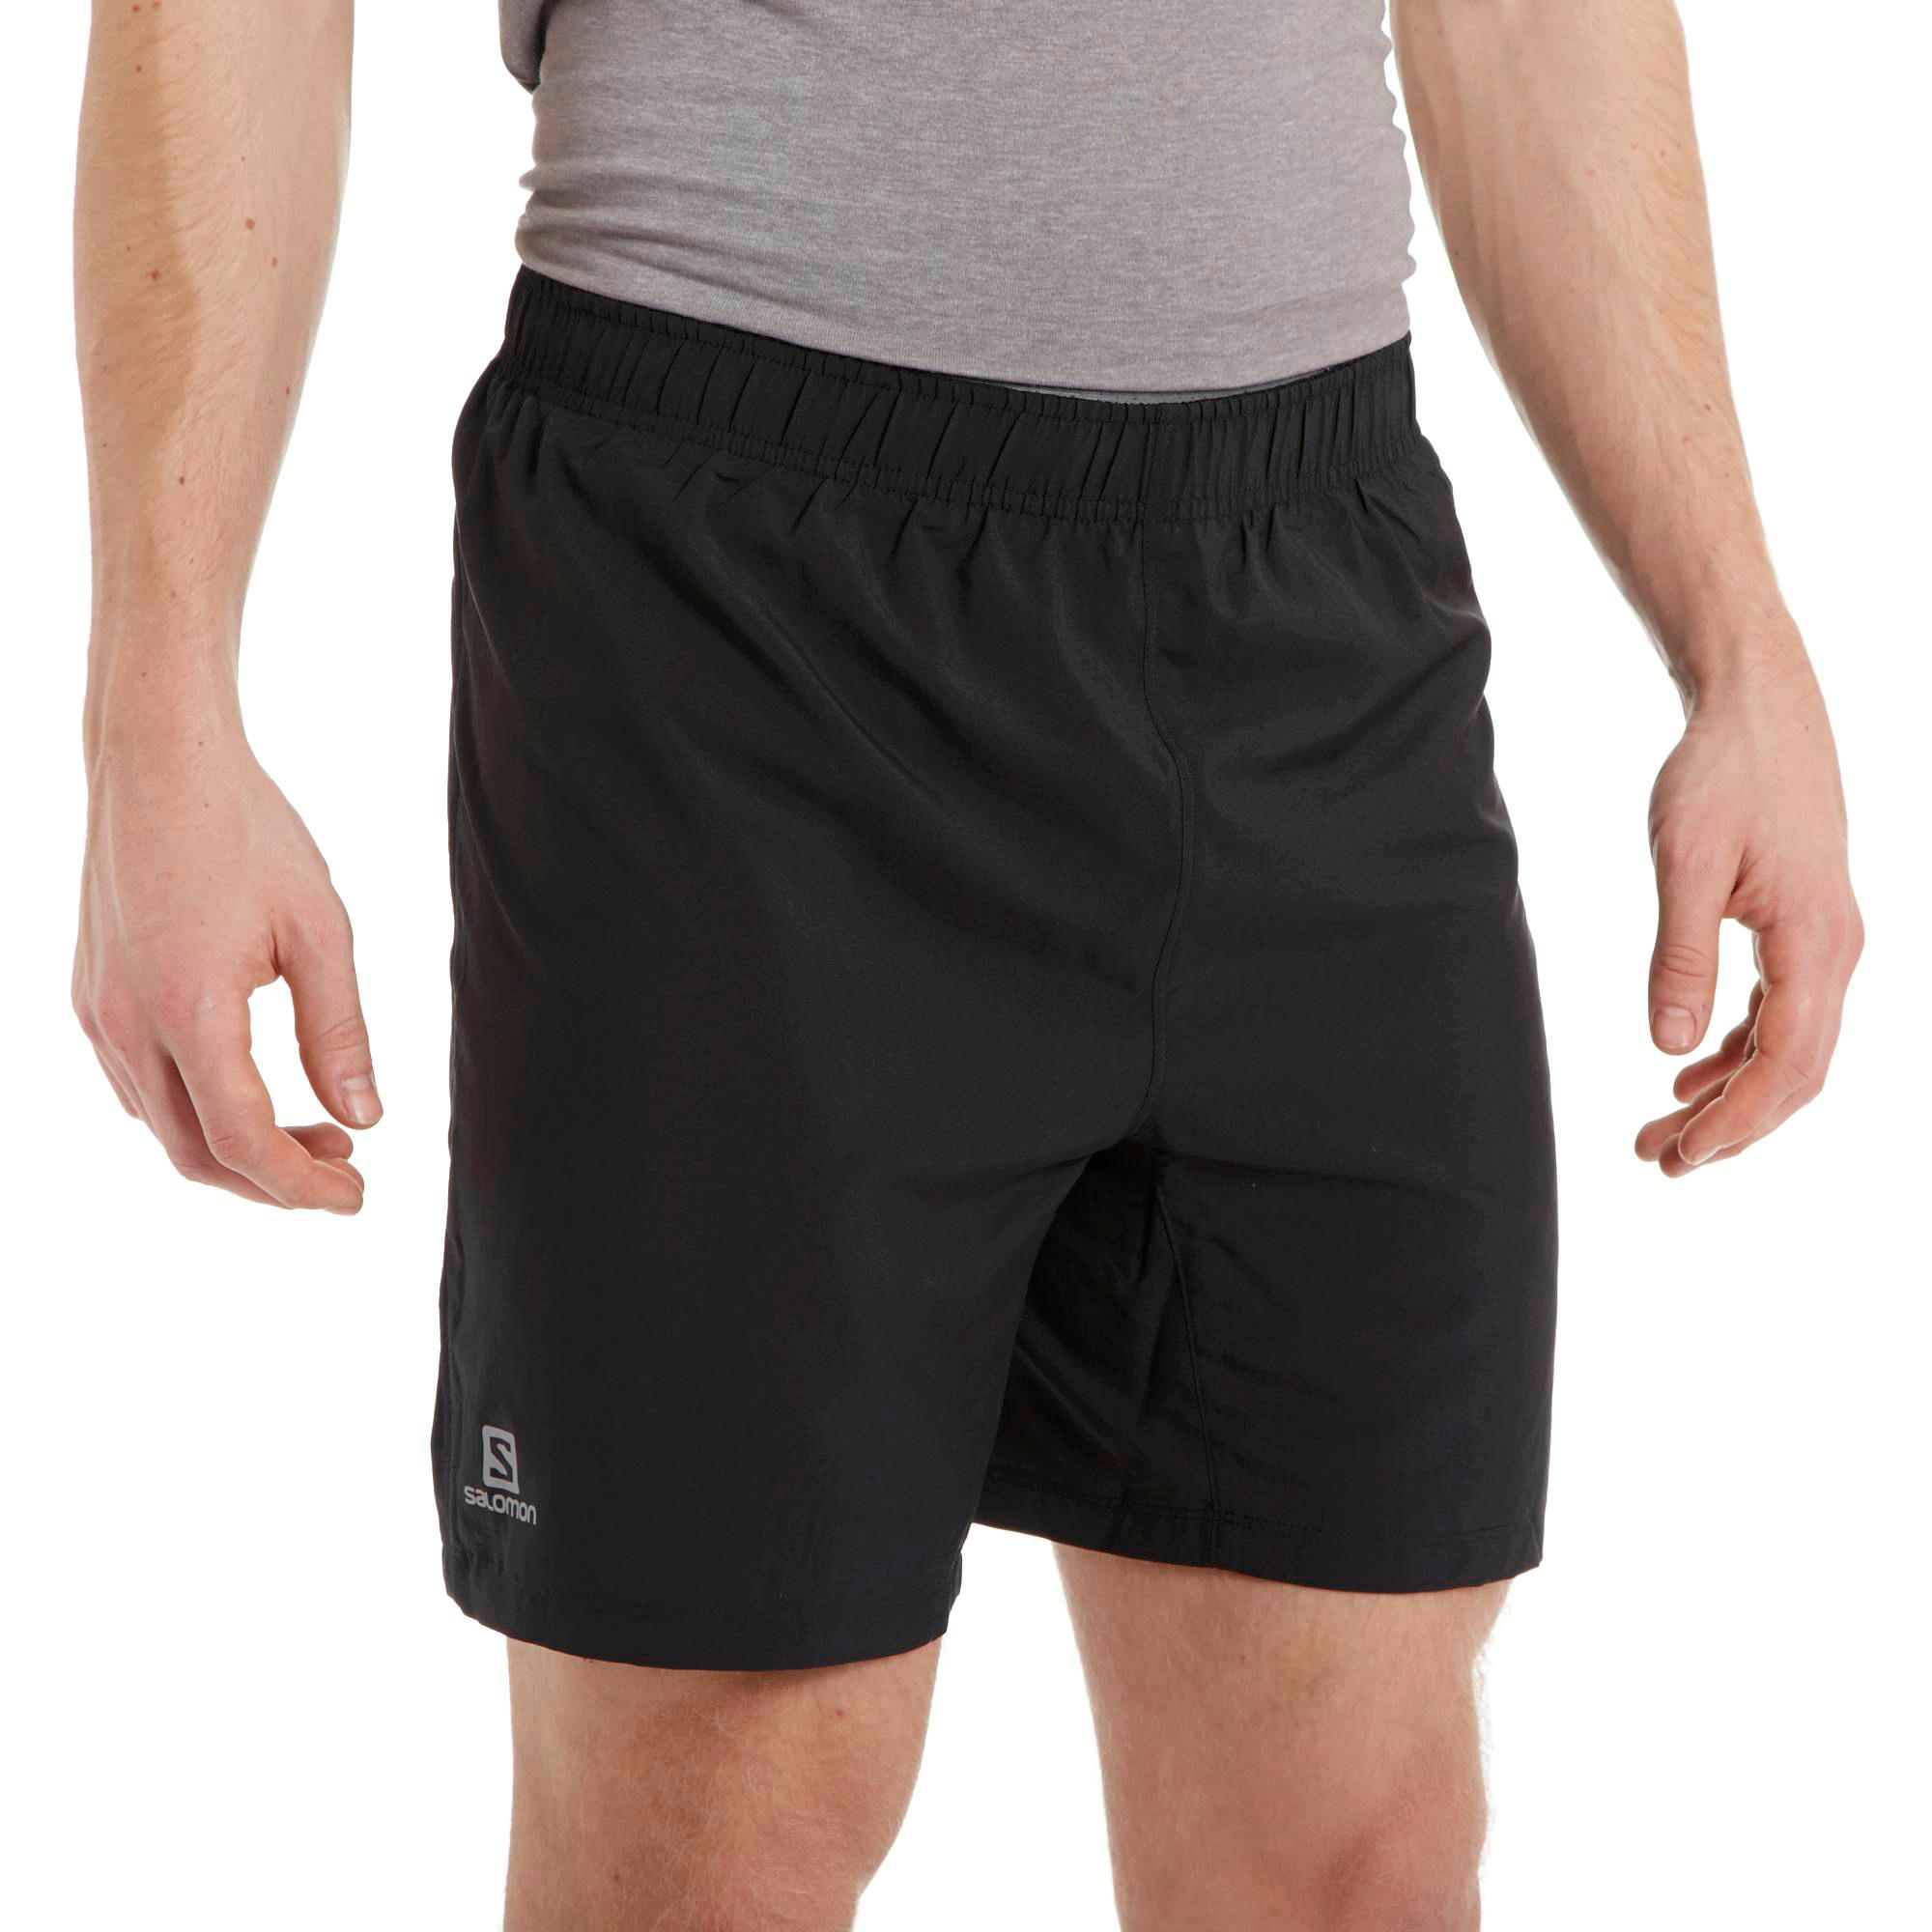 Stockists of Salomon Men's Trail Shorts, Black